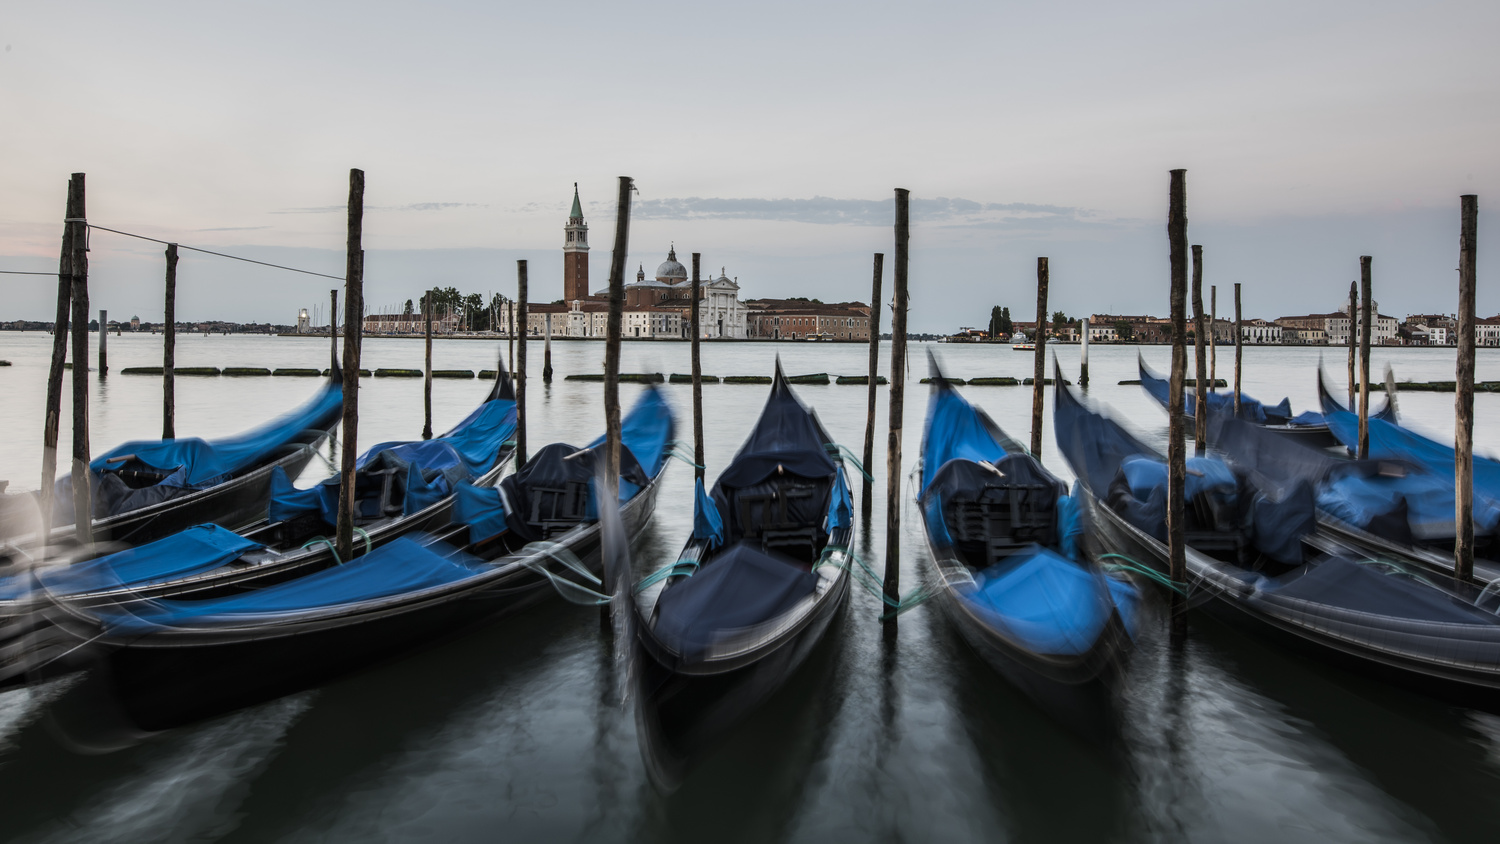 Dancing gondolas by ismail hassanaly